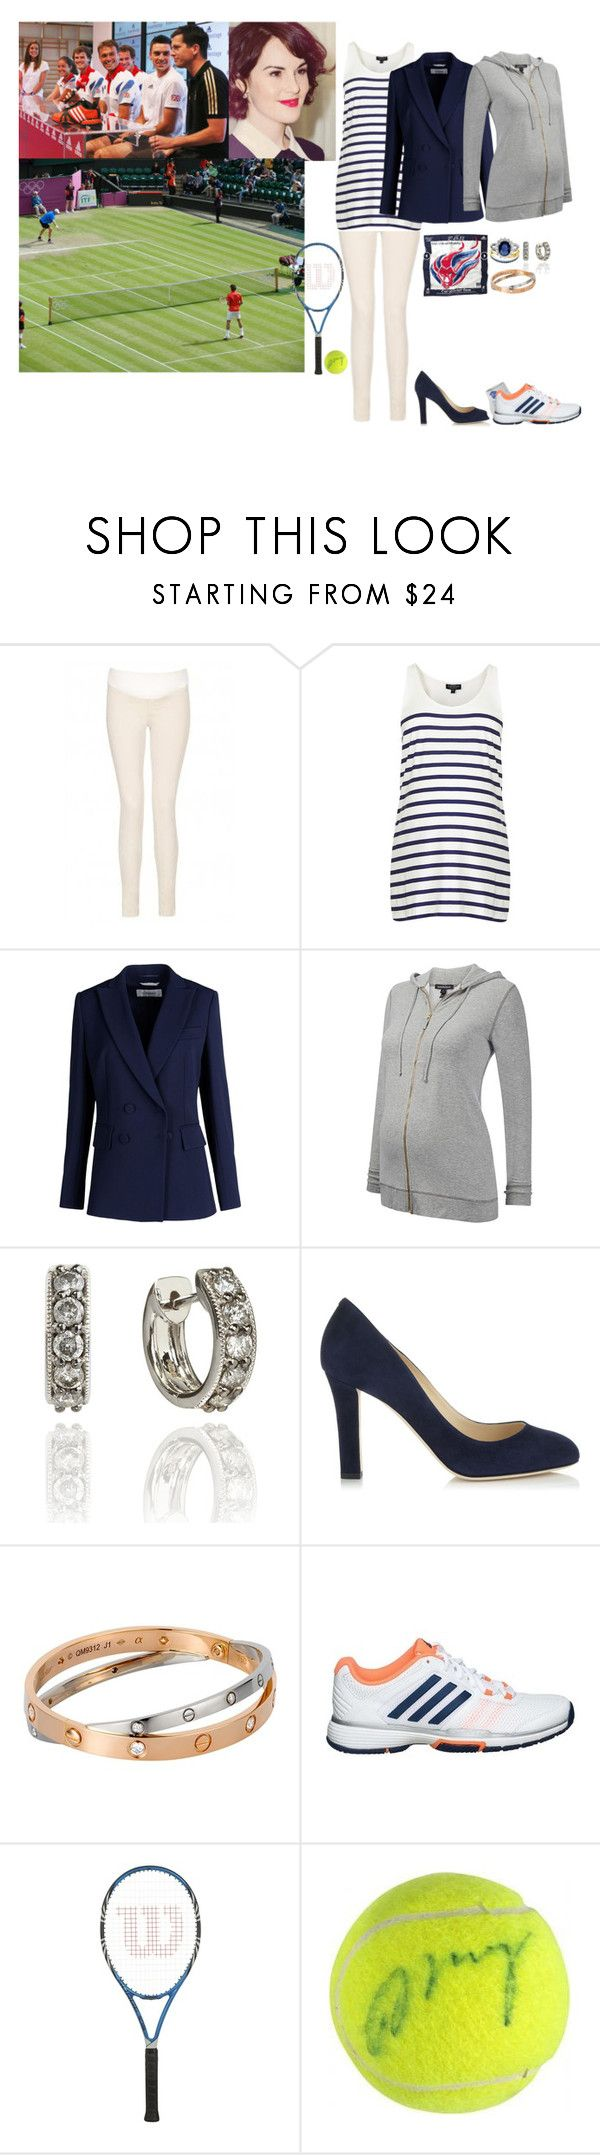 """Surprising the Team GB Tennis Players At The London Olympic Park & Participating In Practice + Receiving A Signed Tennis Ball From Andrew Murray"" by madeleine-duchessofcam ❤ liked on Polyvore featuring J Brand, Topshop, Sportmax, adidas, Jimmy Choo and Cartier"